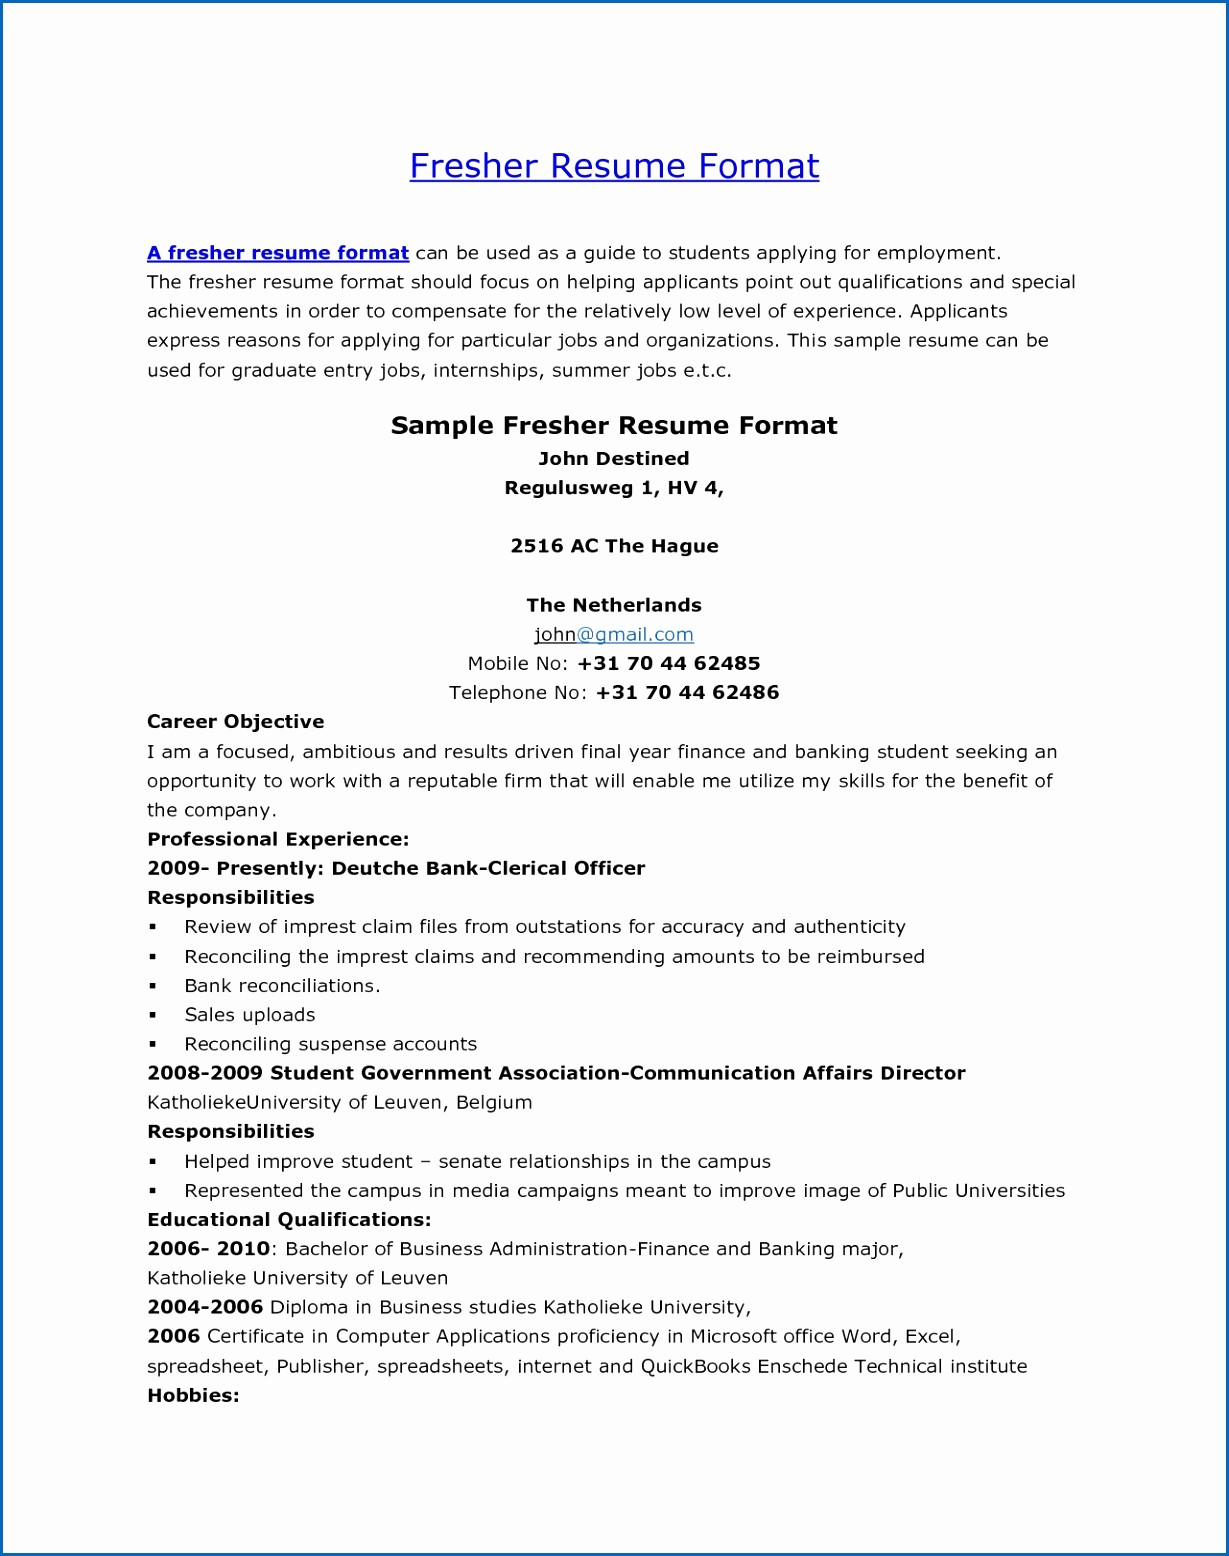 Teacher Resume format In Word New 8 Resume format In Word for Freshers